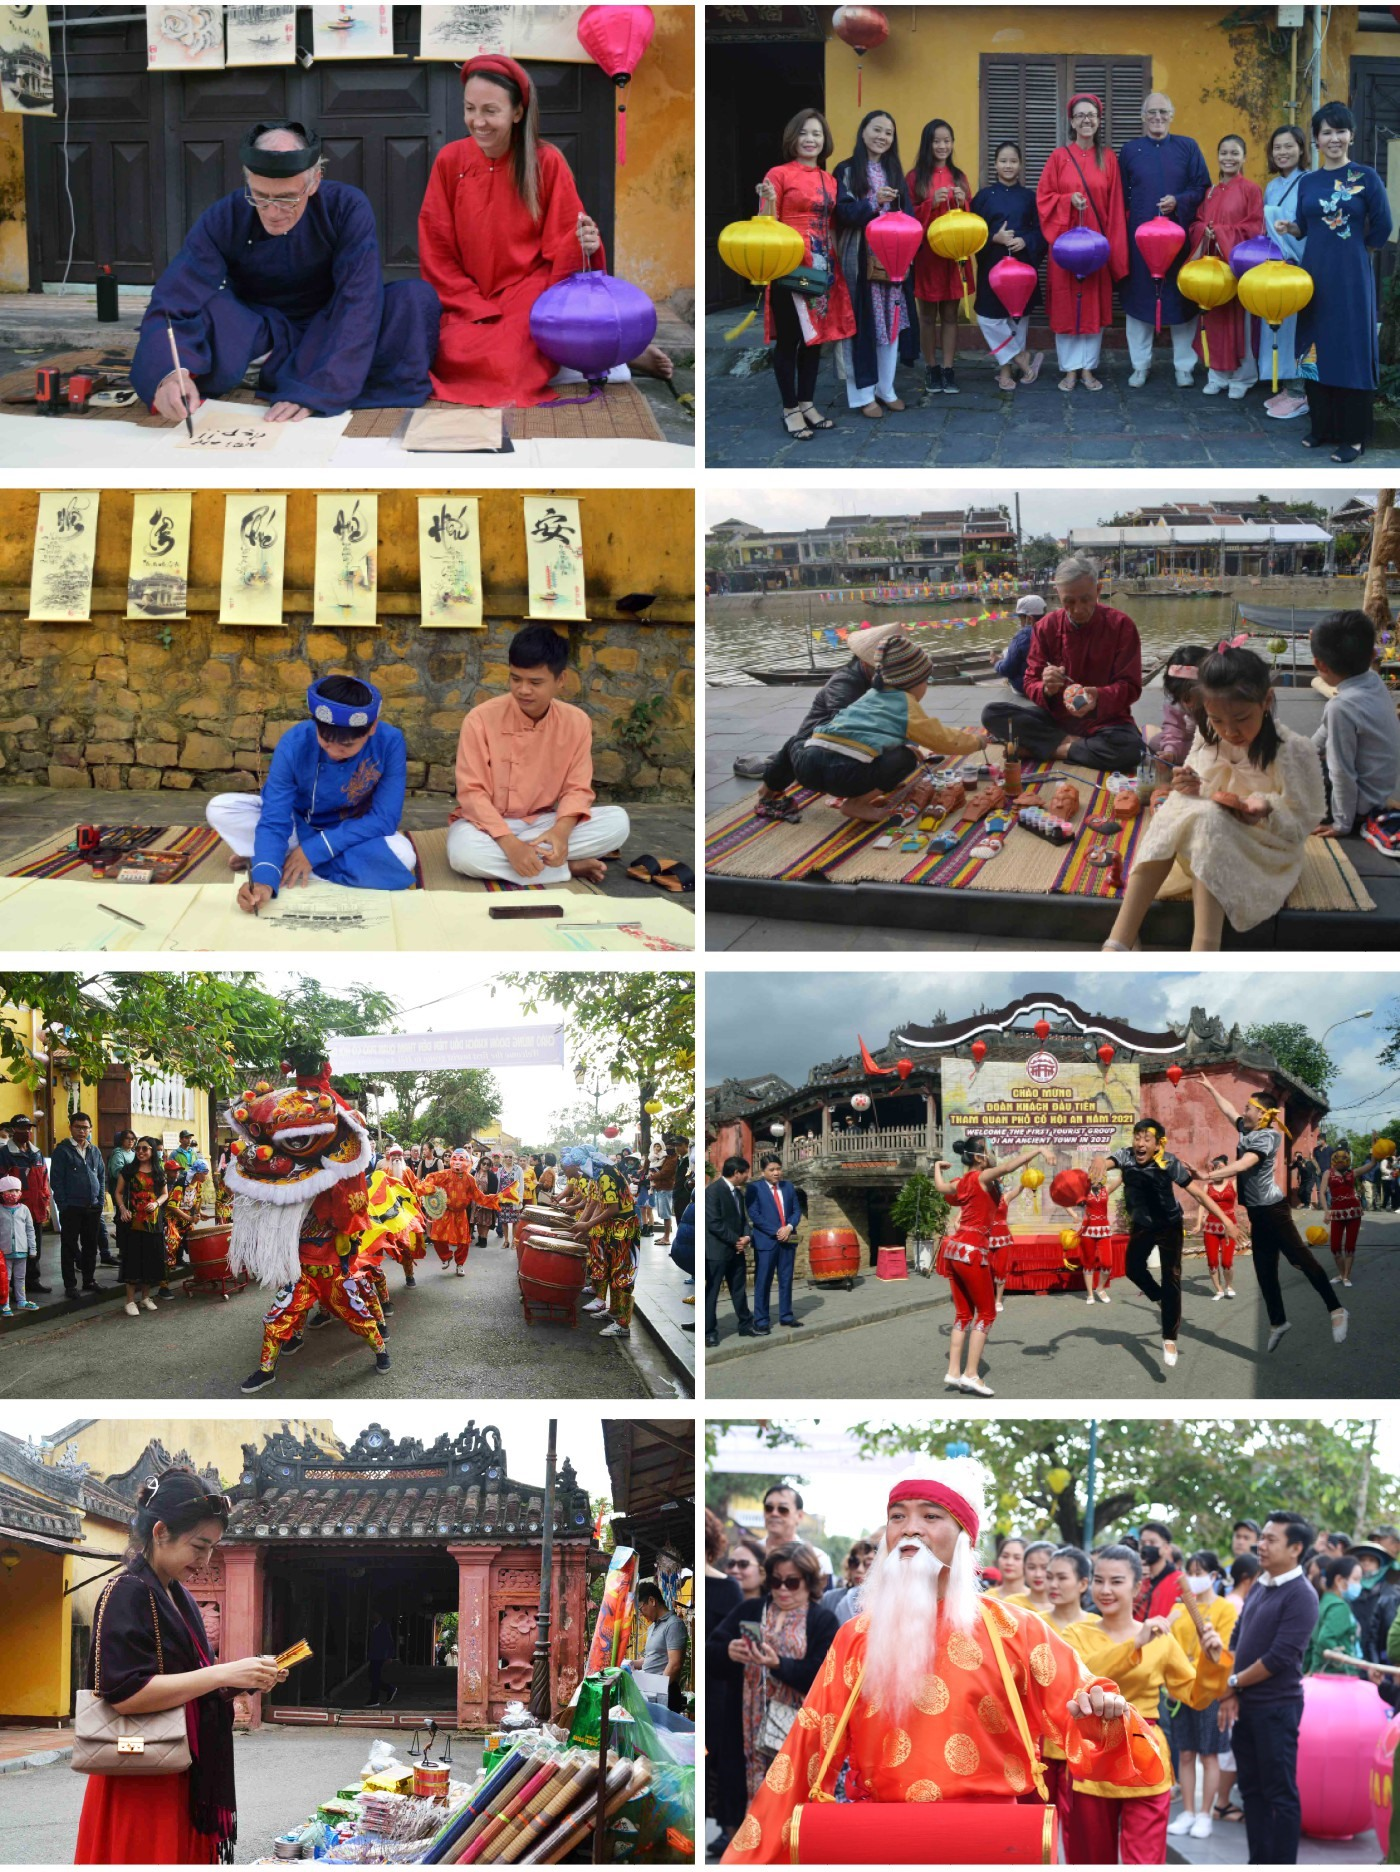 Cultural and artistic performances in Hoi An